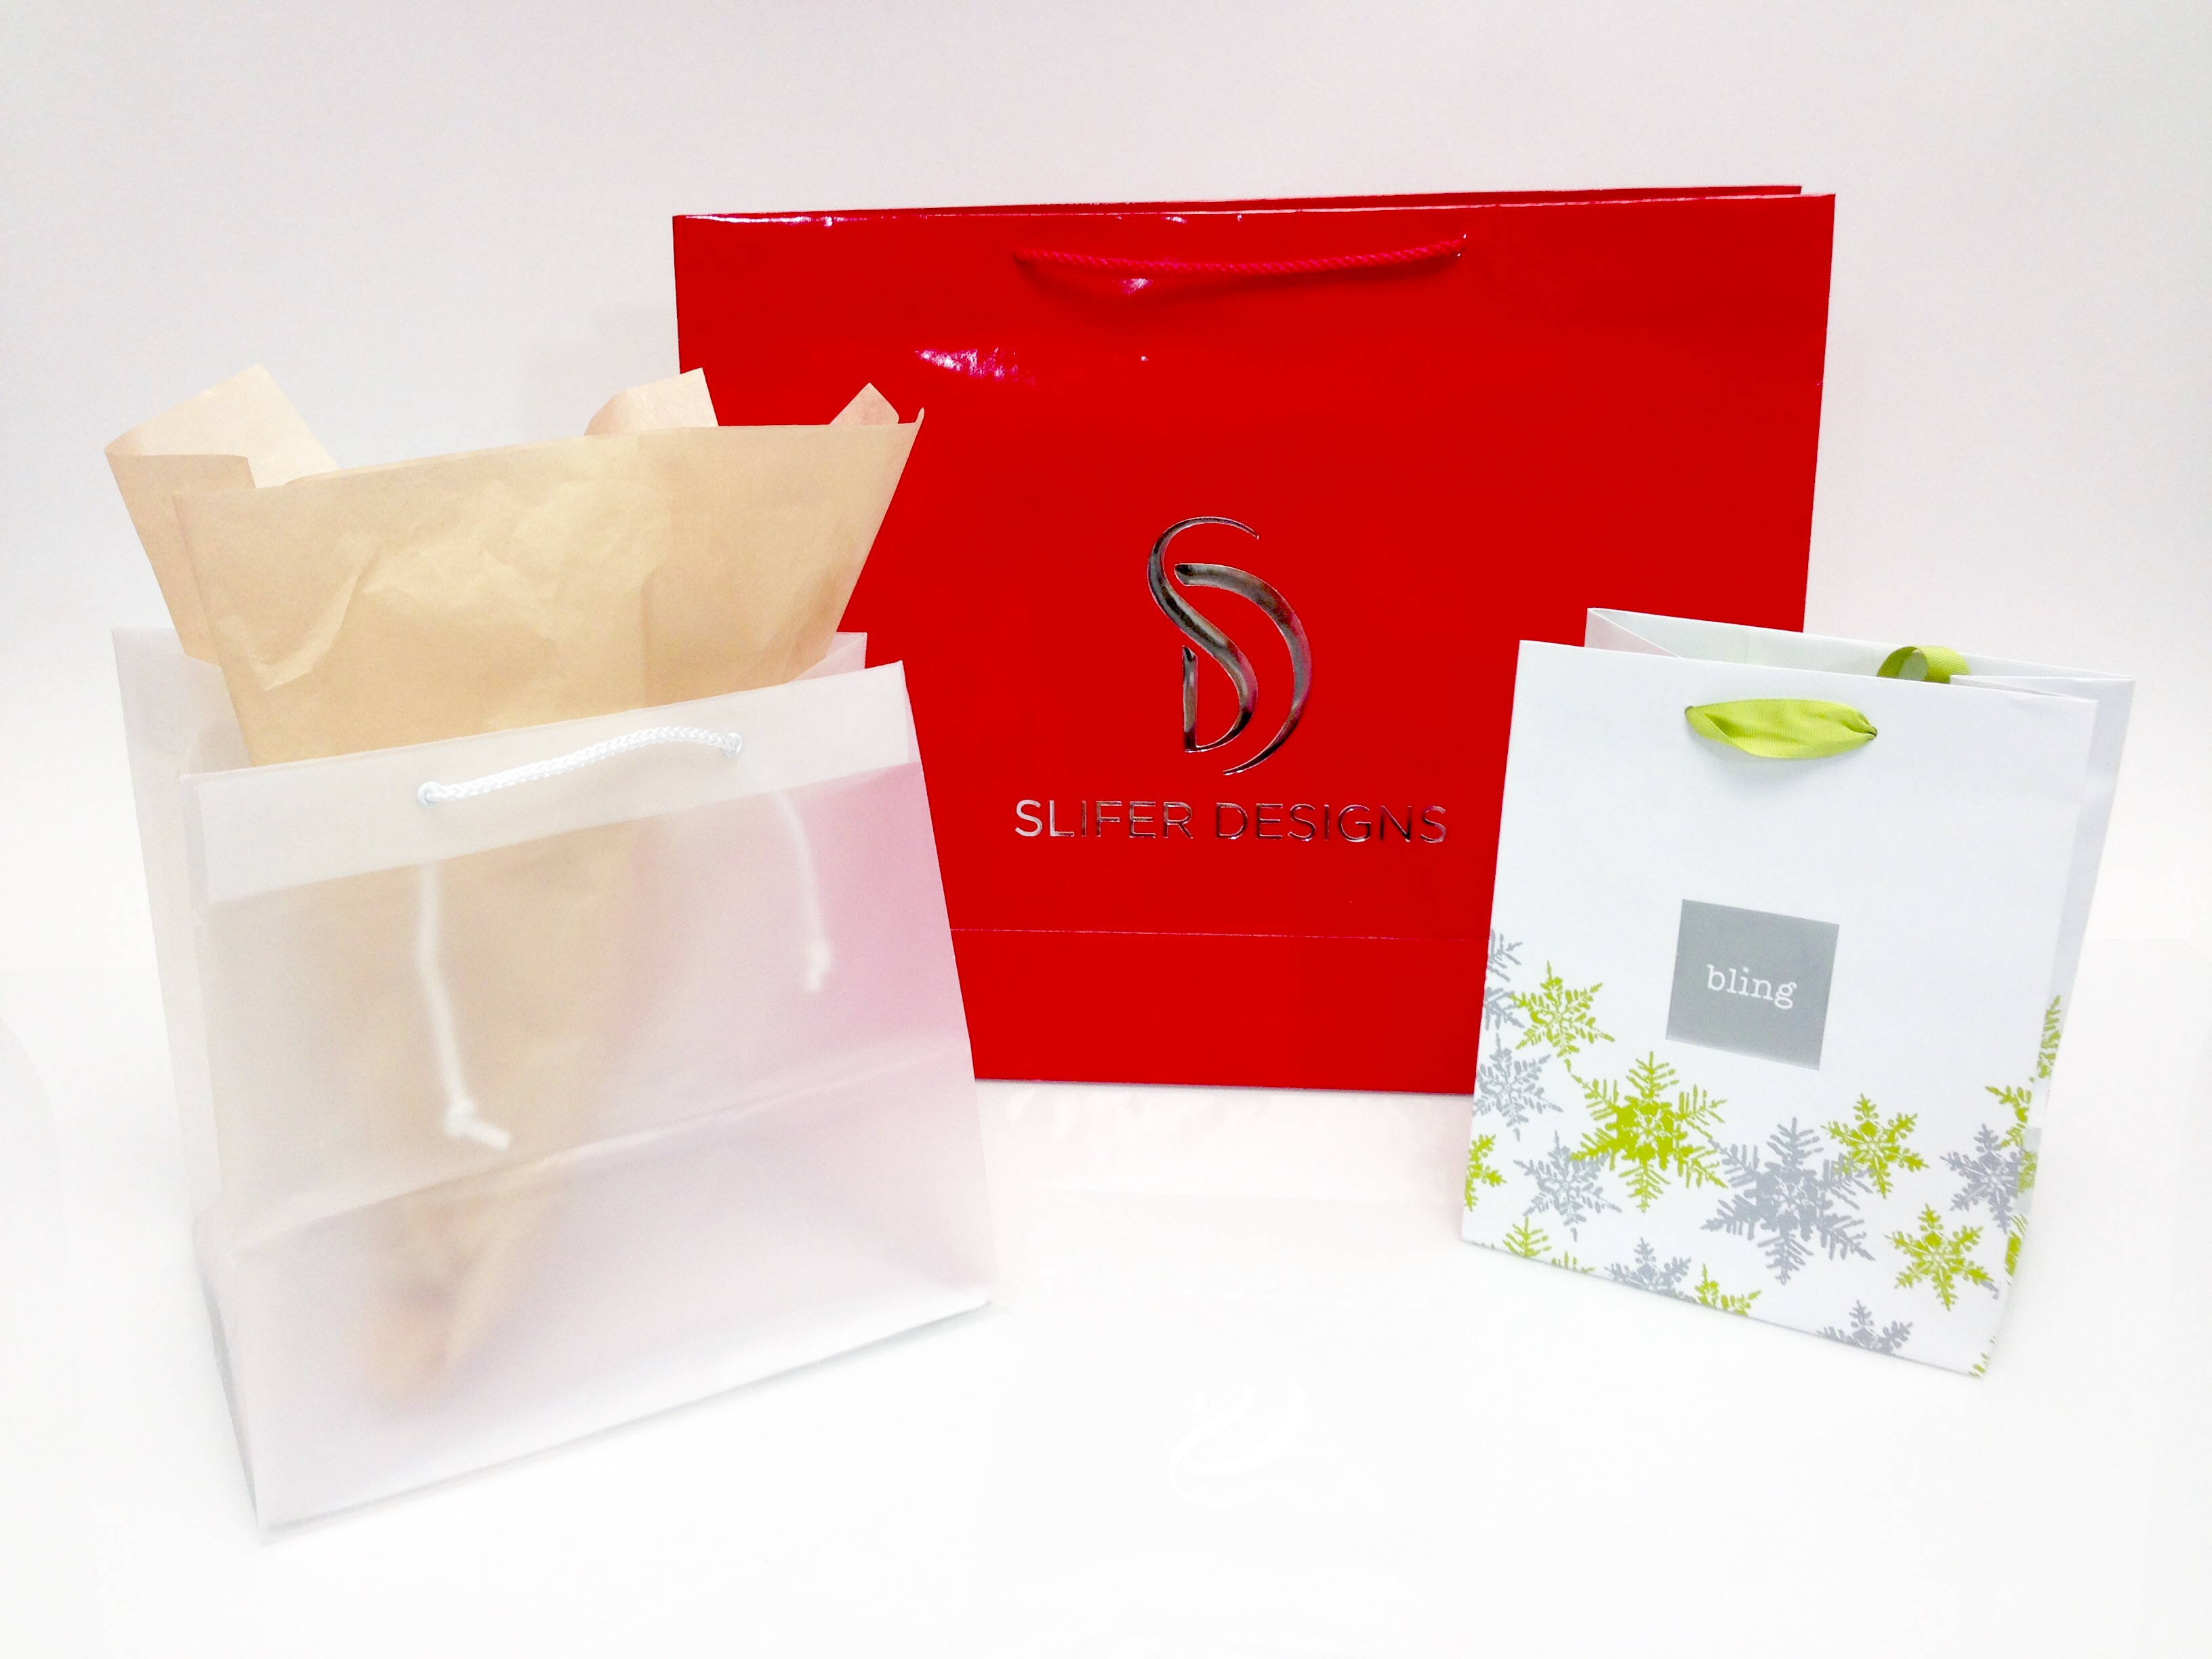 custom printed paper shopping bags Box packaging solution supply printed paper shopping bag with good design and affordable rate, offer paper bags with free template and die cut design.